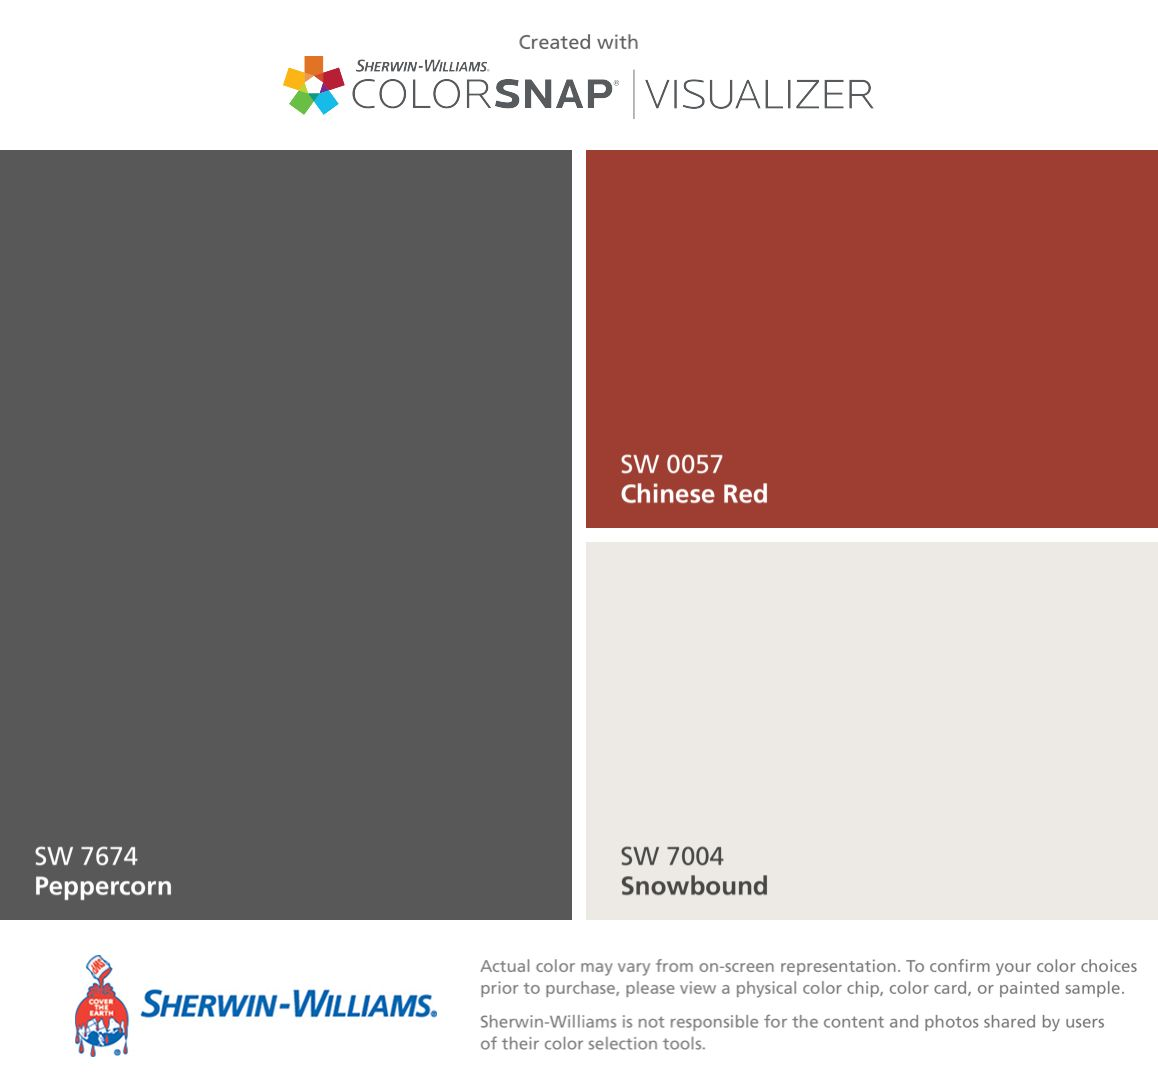 I Found These Colors With Colorsnap Visualizer For Iphone By Sherwin Williams Peppercorn Sw 7674 Chinese Red 0057 Snowbound 7004